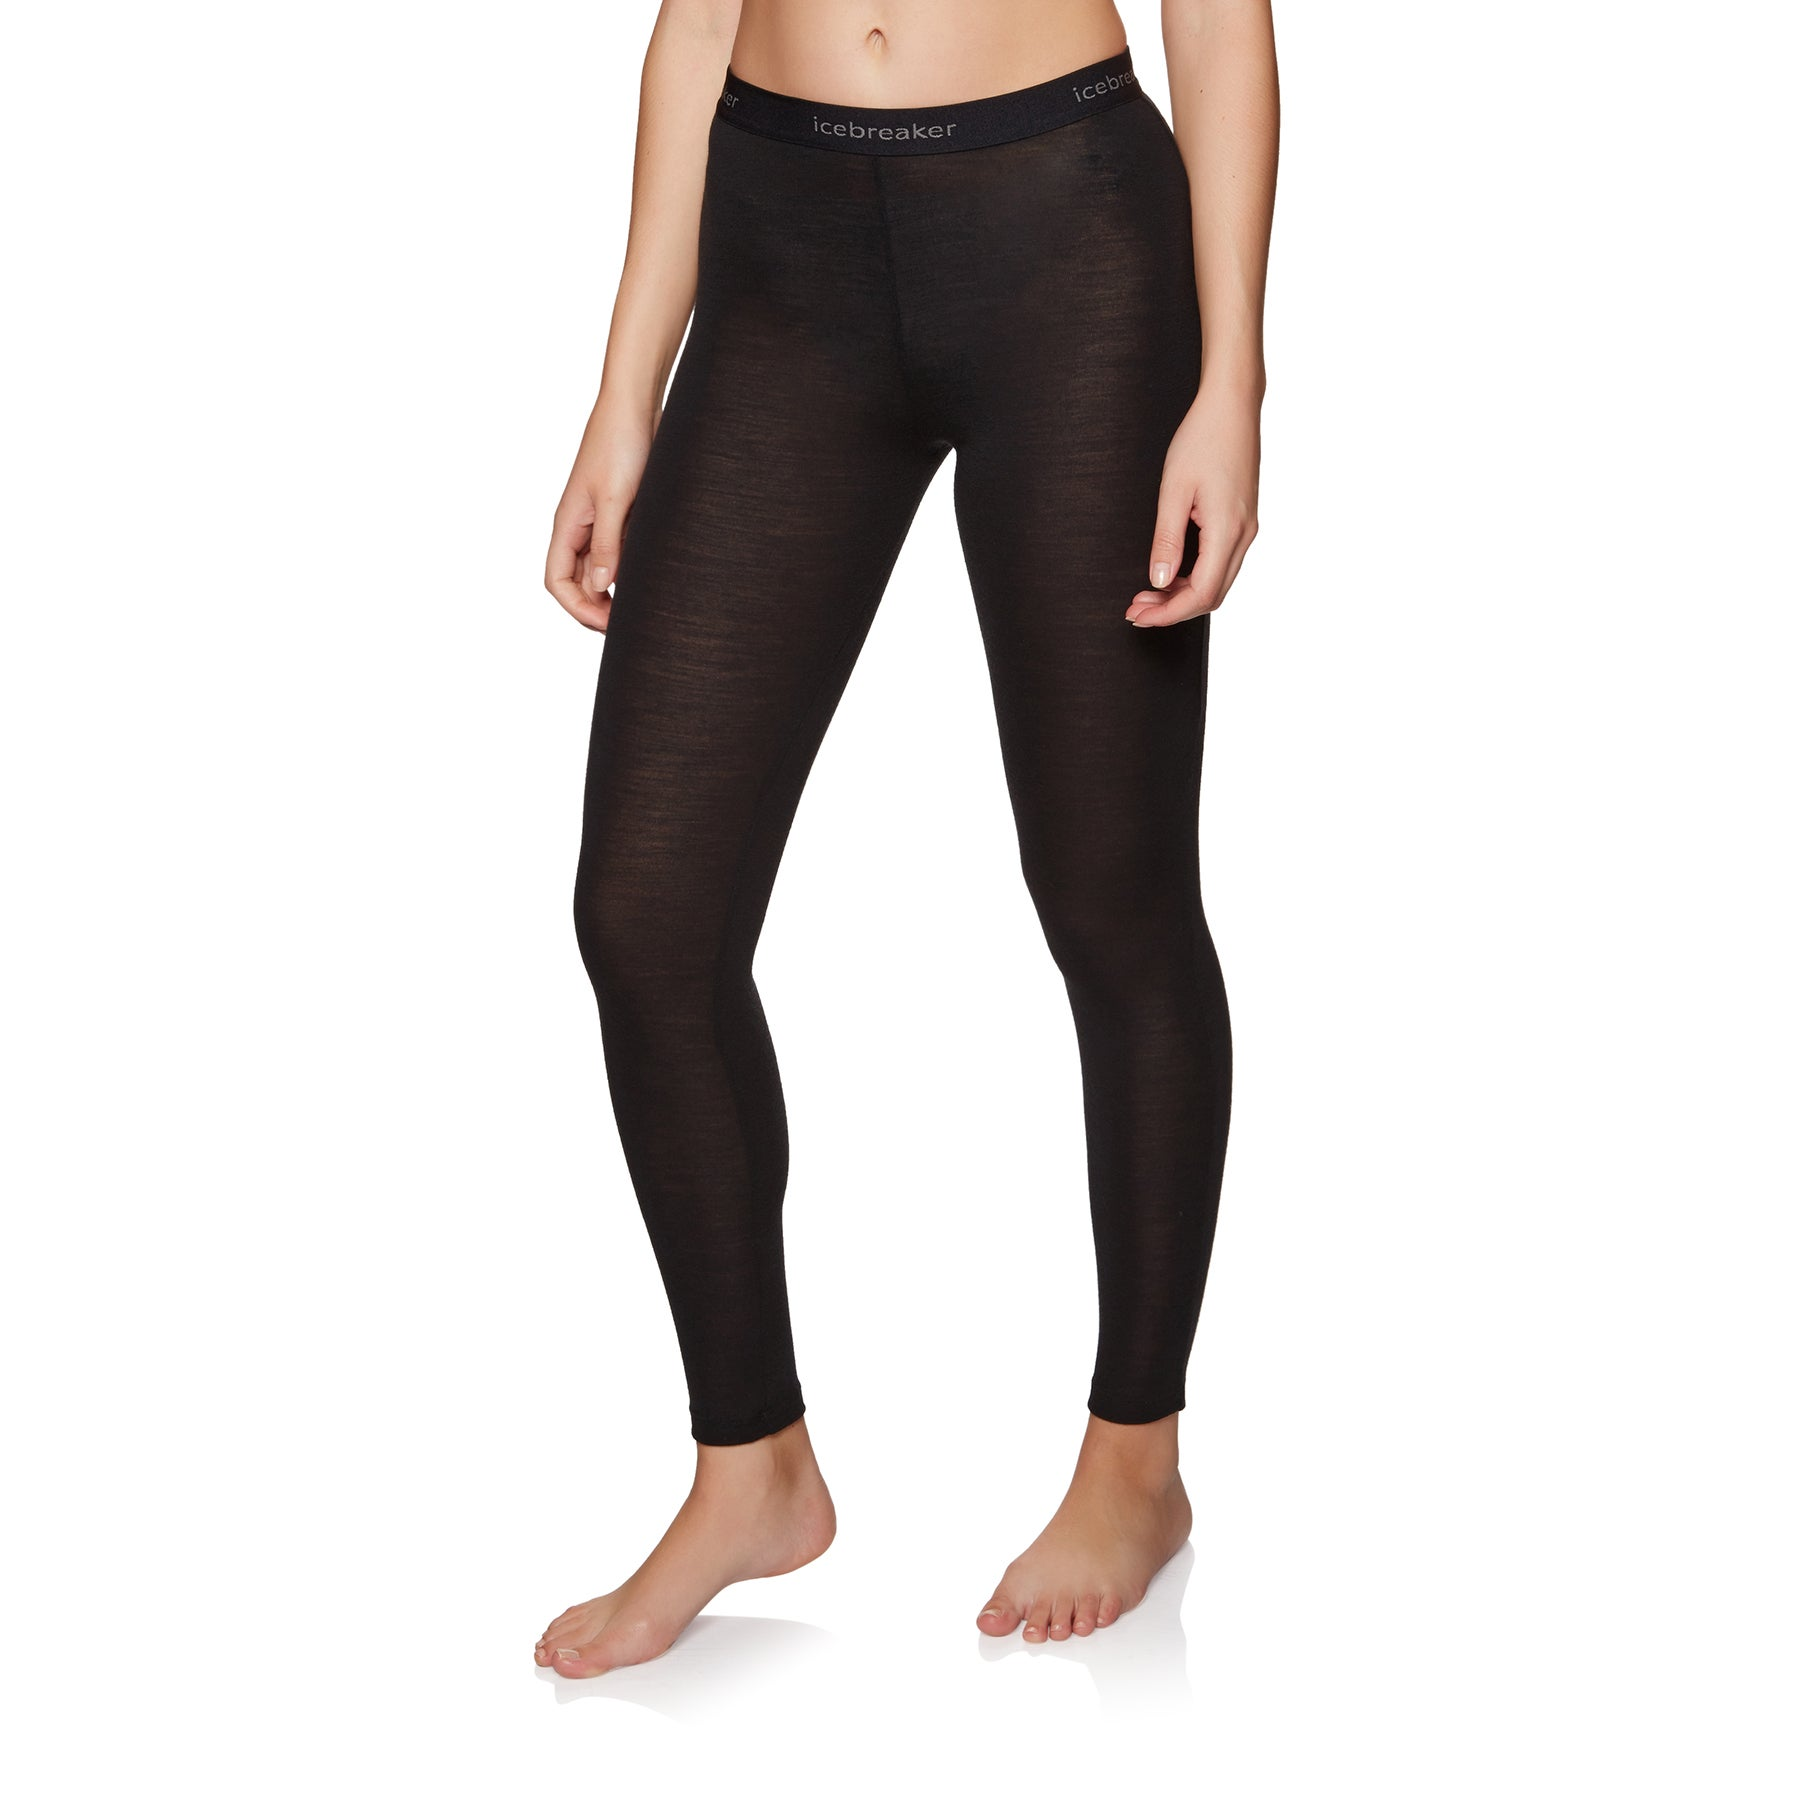 Polainas de base interior Mujer Icebreaker Wmns 175 Everyday Leggings - Black